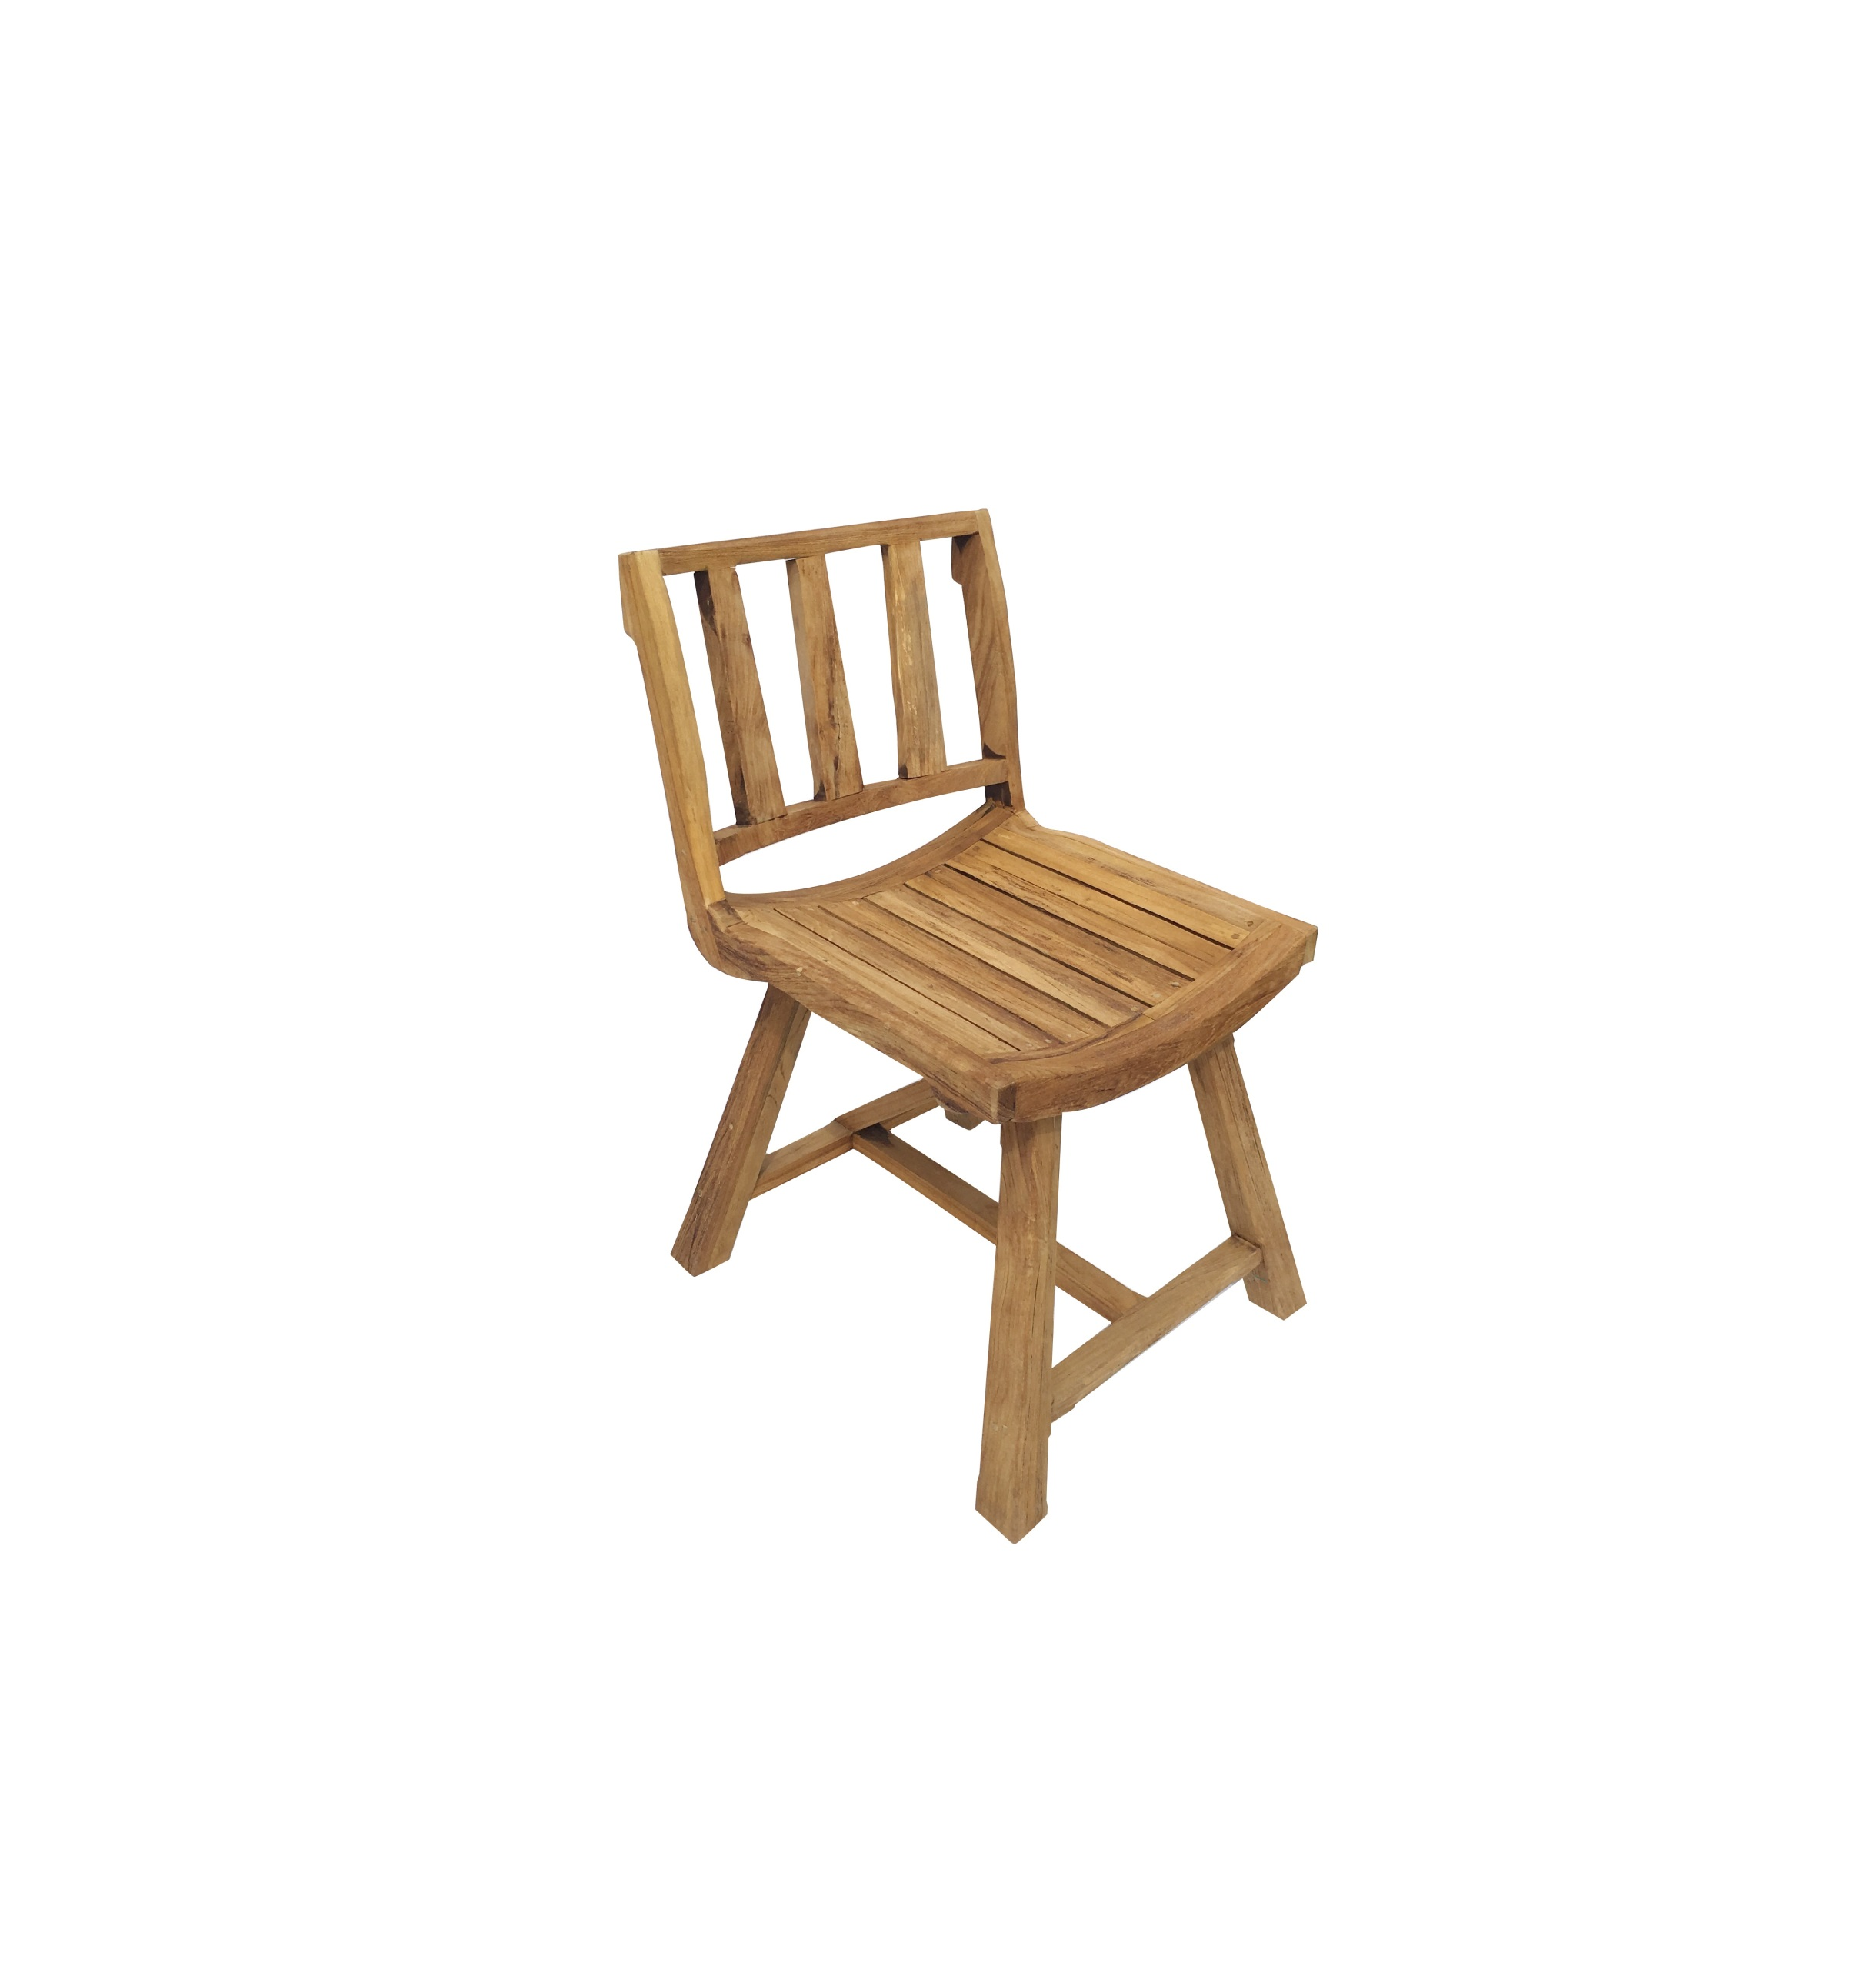 Thailand Patio Furniture Manufacturers: Reclaimed Thailand Side Chair